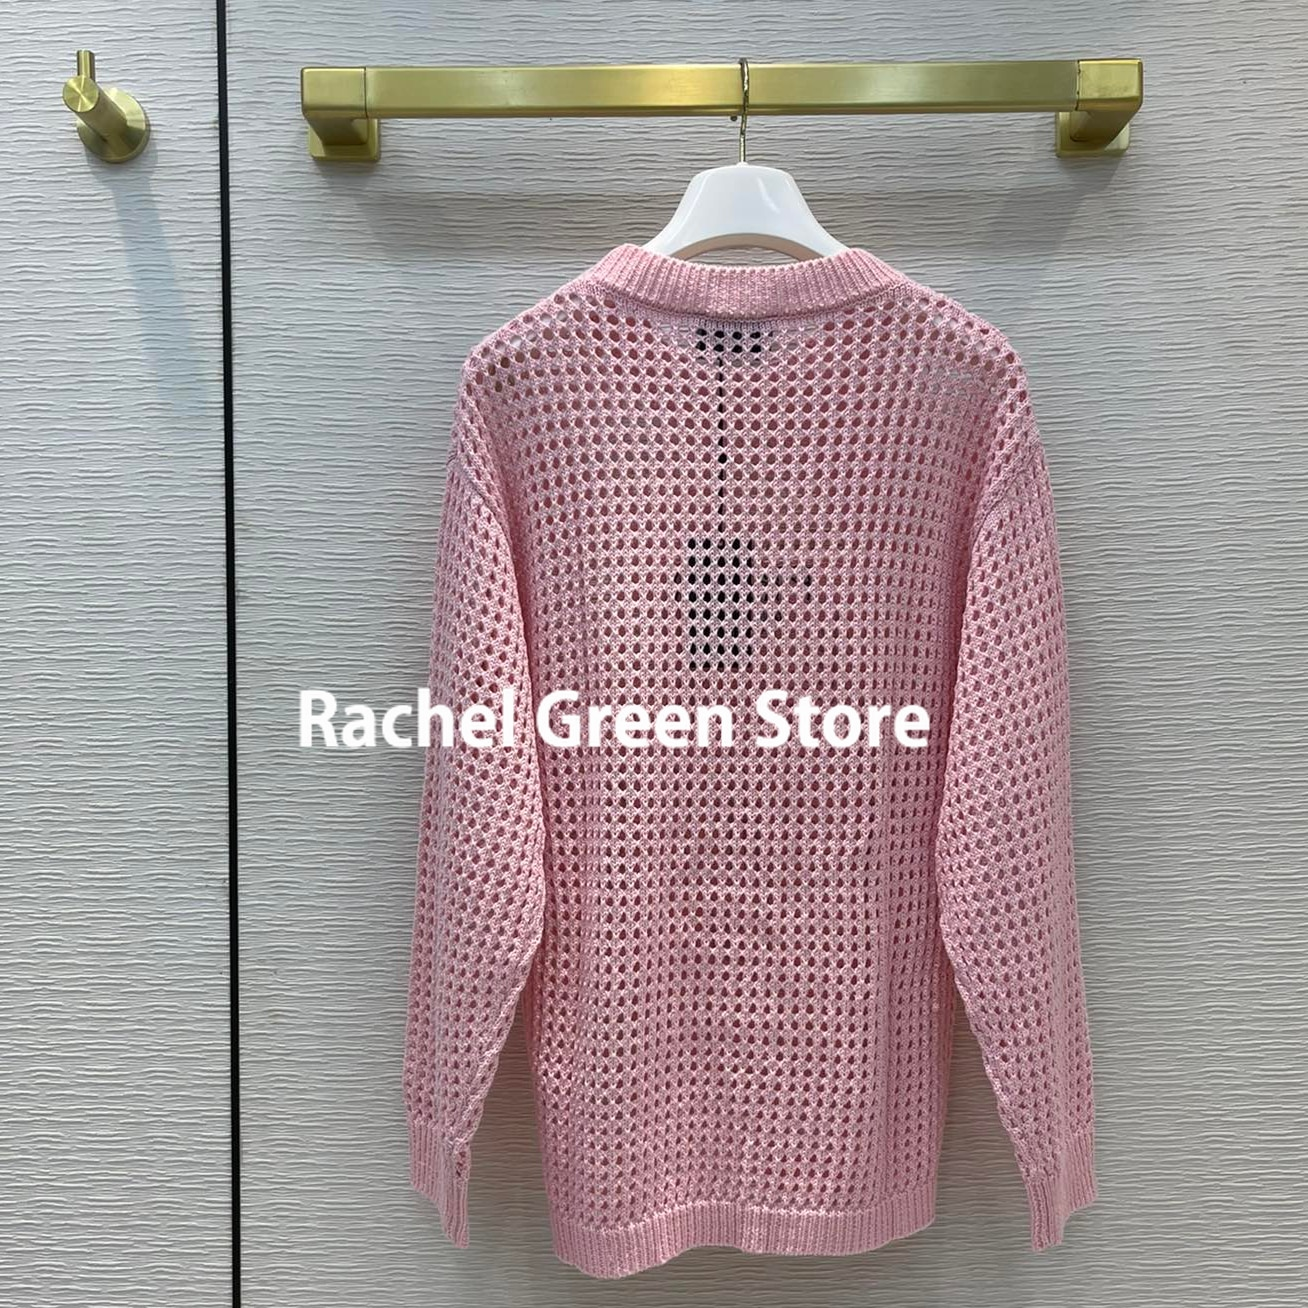 Luxury designer 2021 branded woman sweaters hollow out crochet letter logo triangle high end kntted long sleeve autumn sweater enlarge